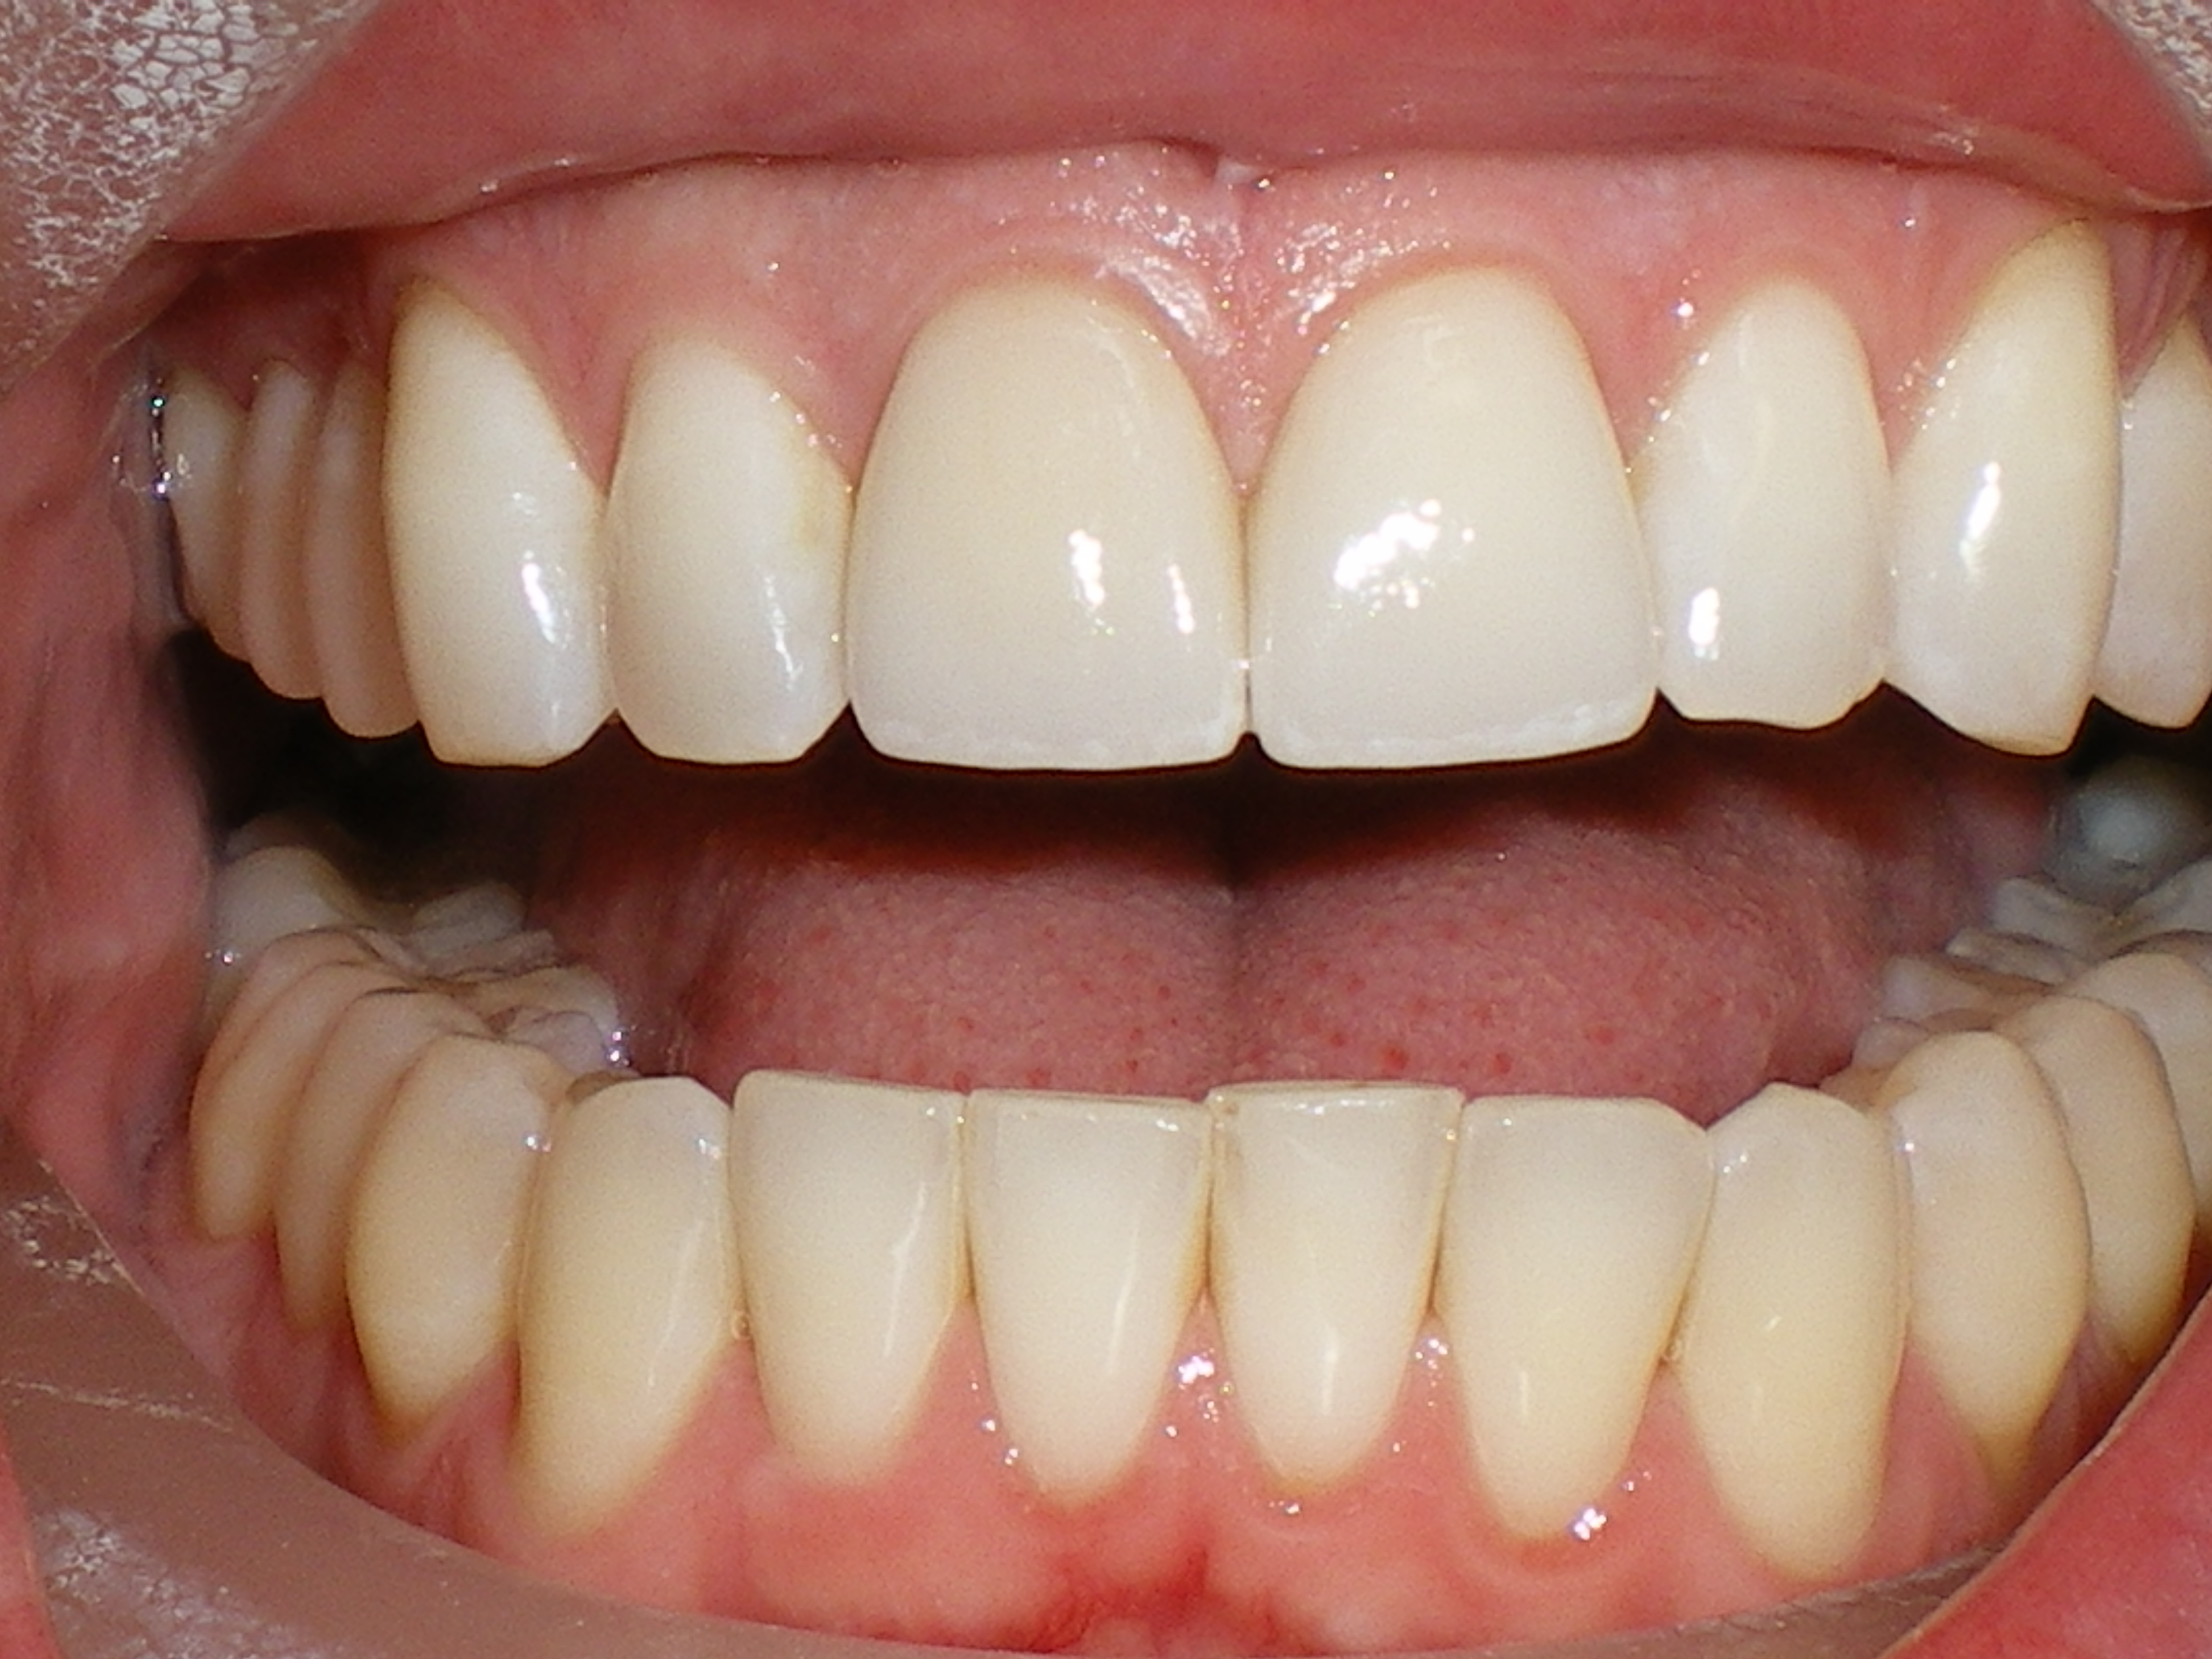 What should healthy gums look like